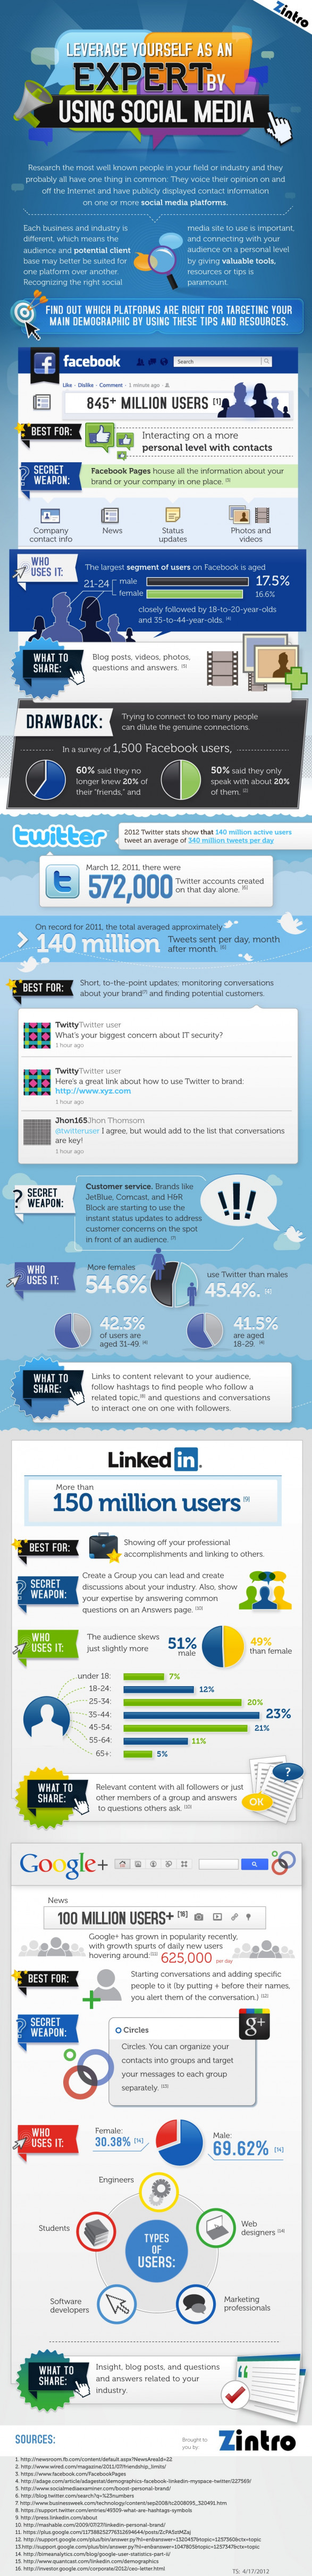 leverage yourself as an expert by using social media 502917650f793 w587 [INFOGRAPHIC] Leverage yourself as an expert by using Social Media